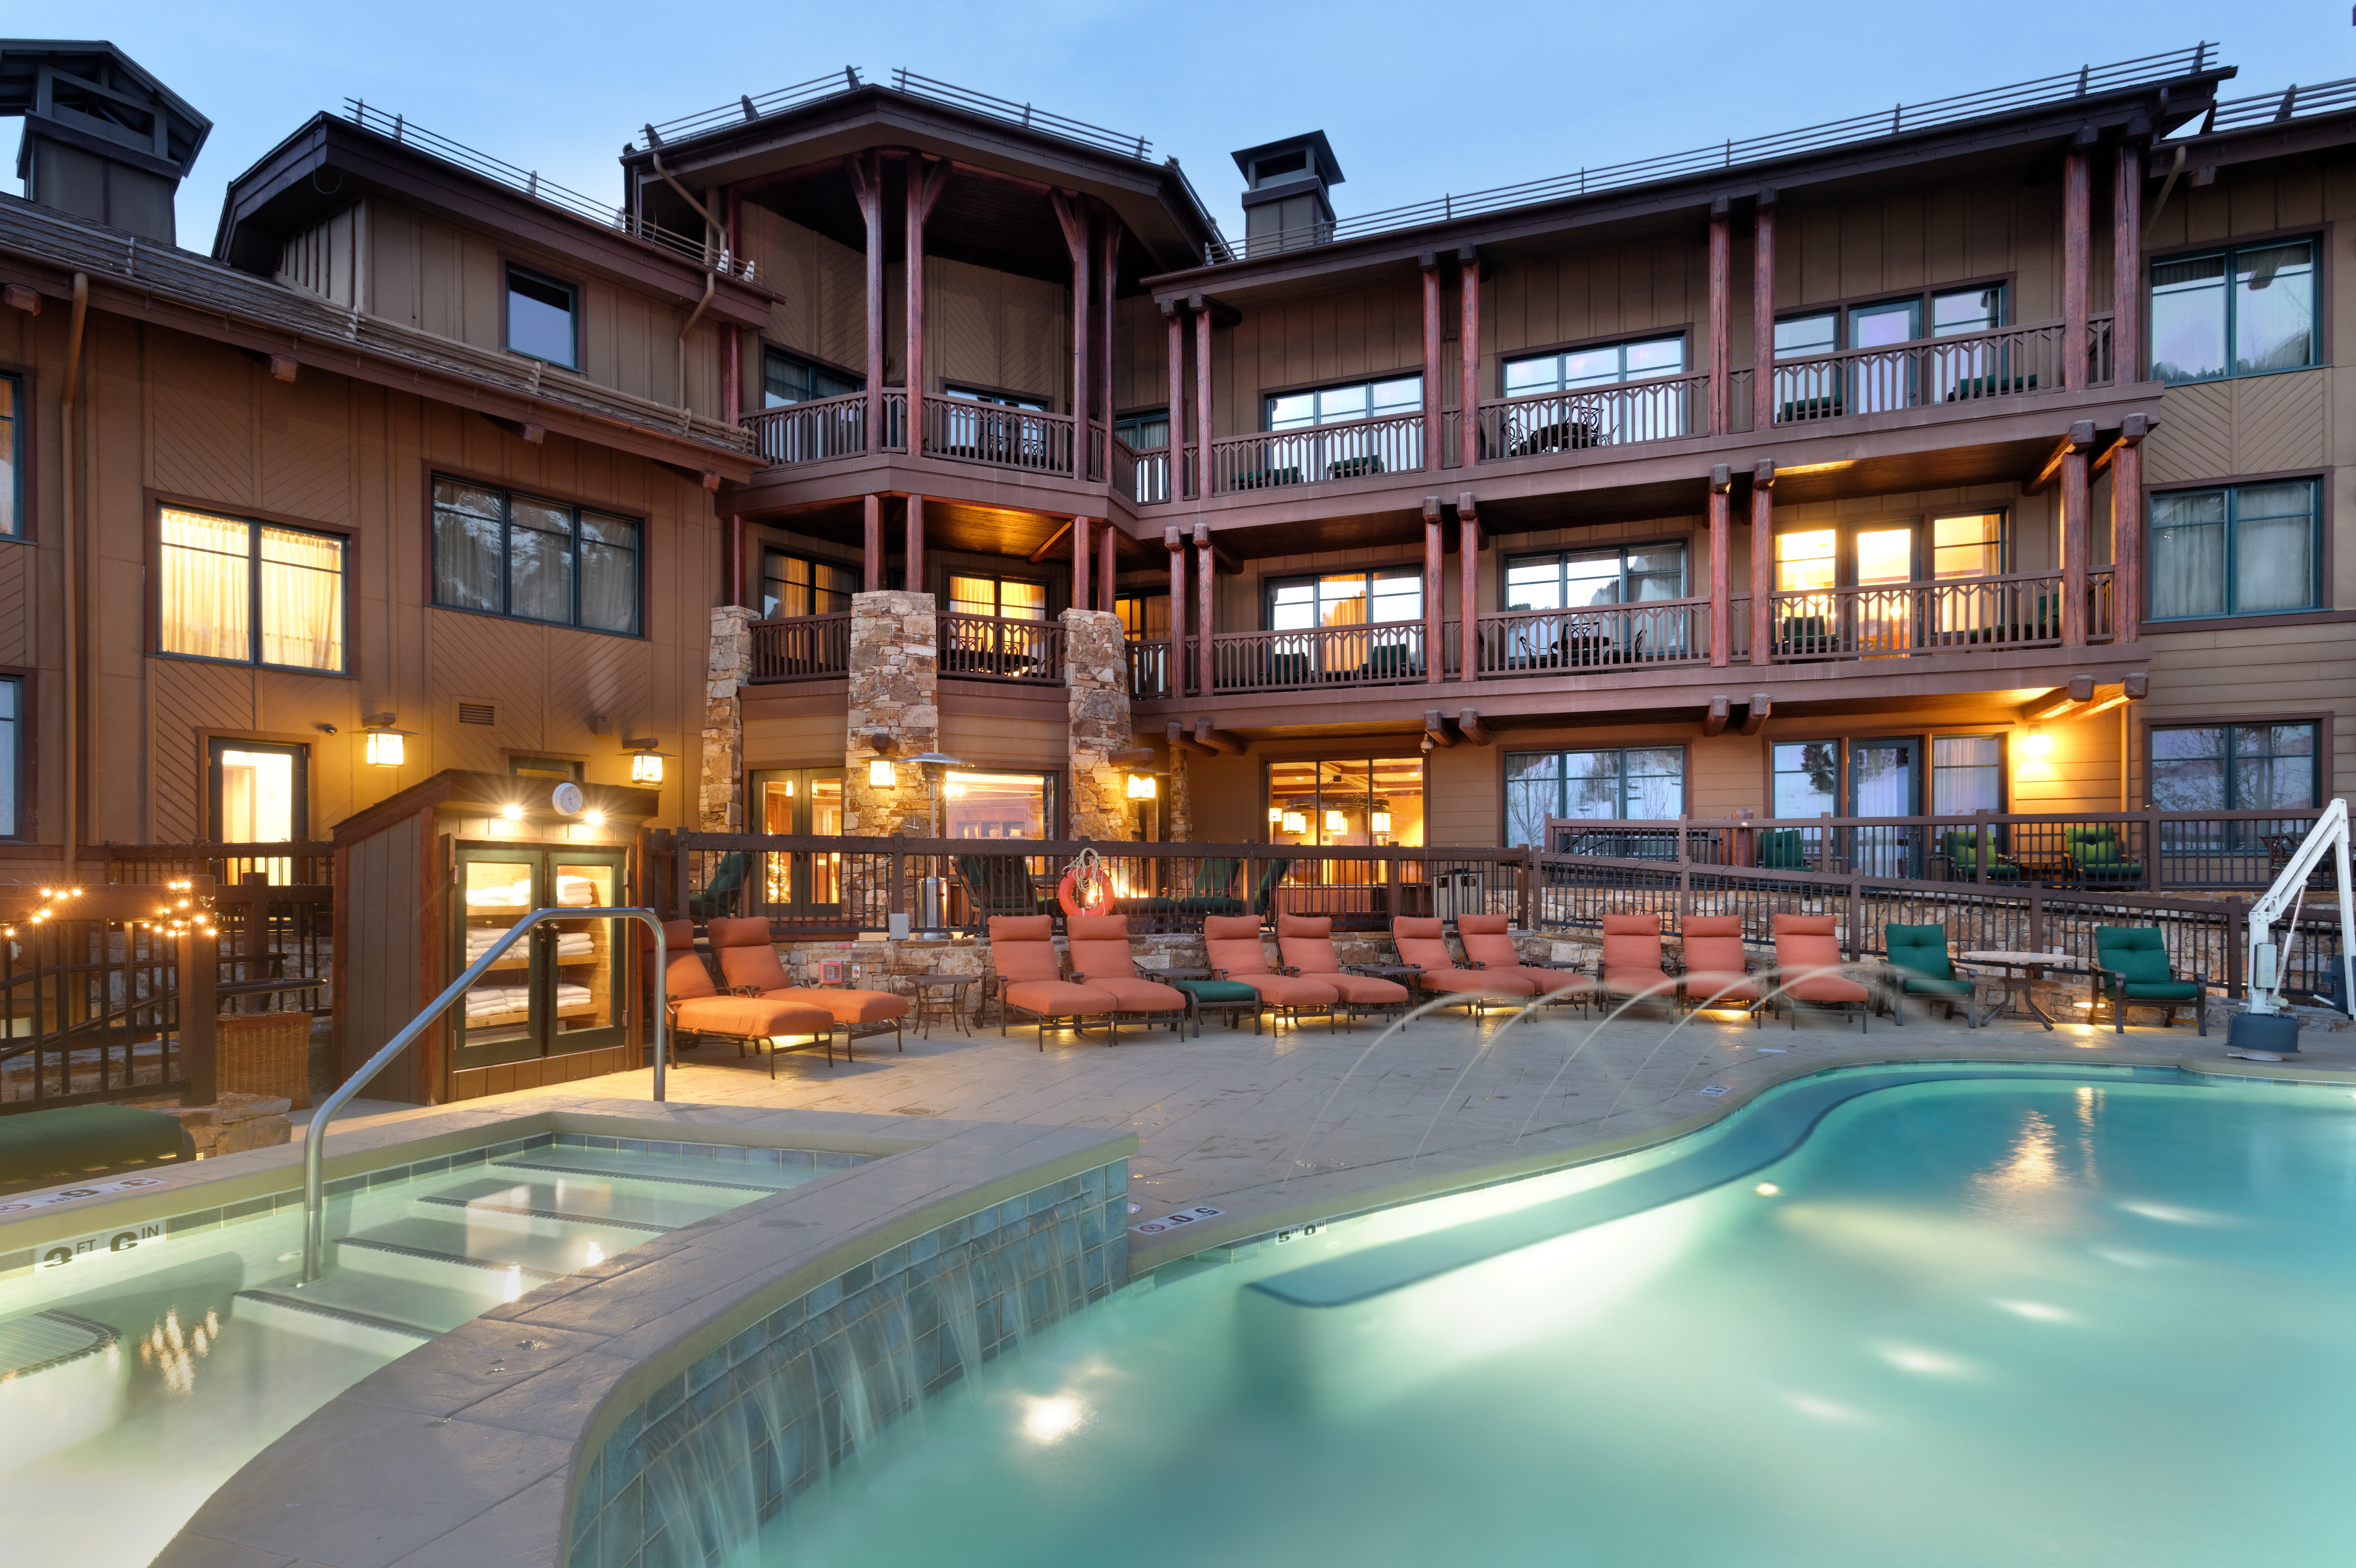 Anteiliges Eigentum für Verkauf beim Ritz-Carlton Club Fractional Condo Interest 0197 Prospector Road, 2406, Summer Interest 12, Ritz-Carlton Club Fractional Condo Interest Aspen, Colorado, 81611 Vereinigte Staaten